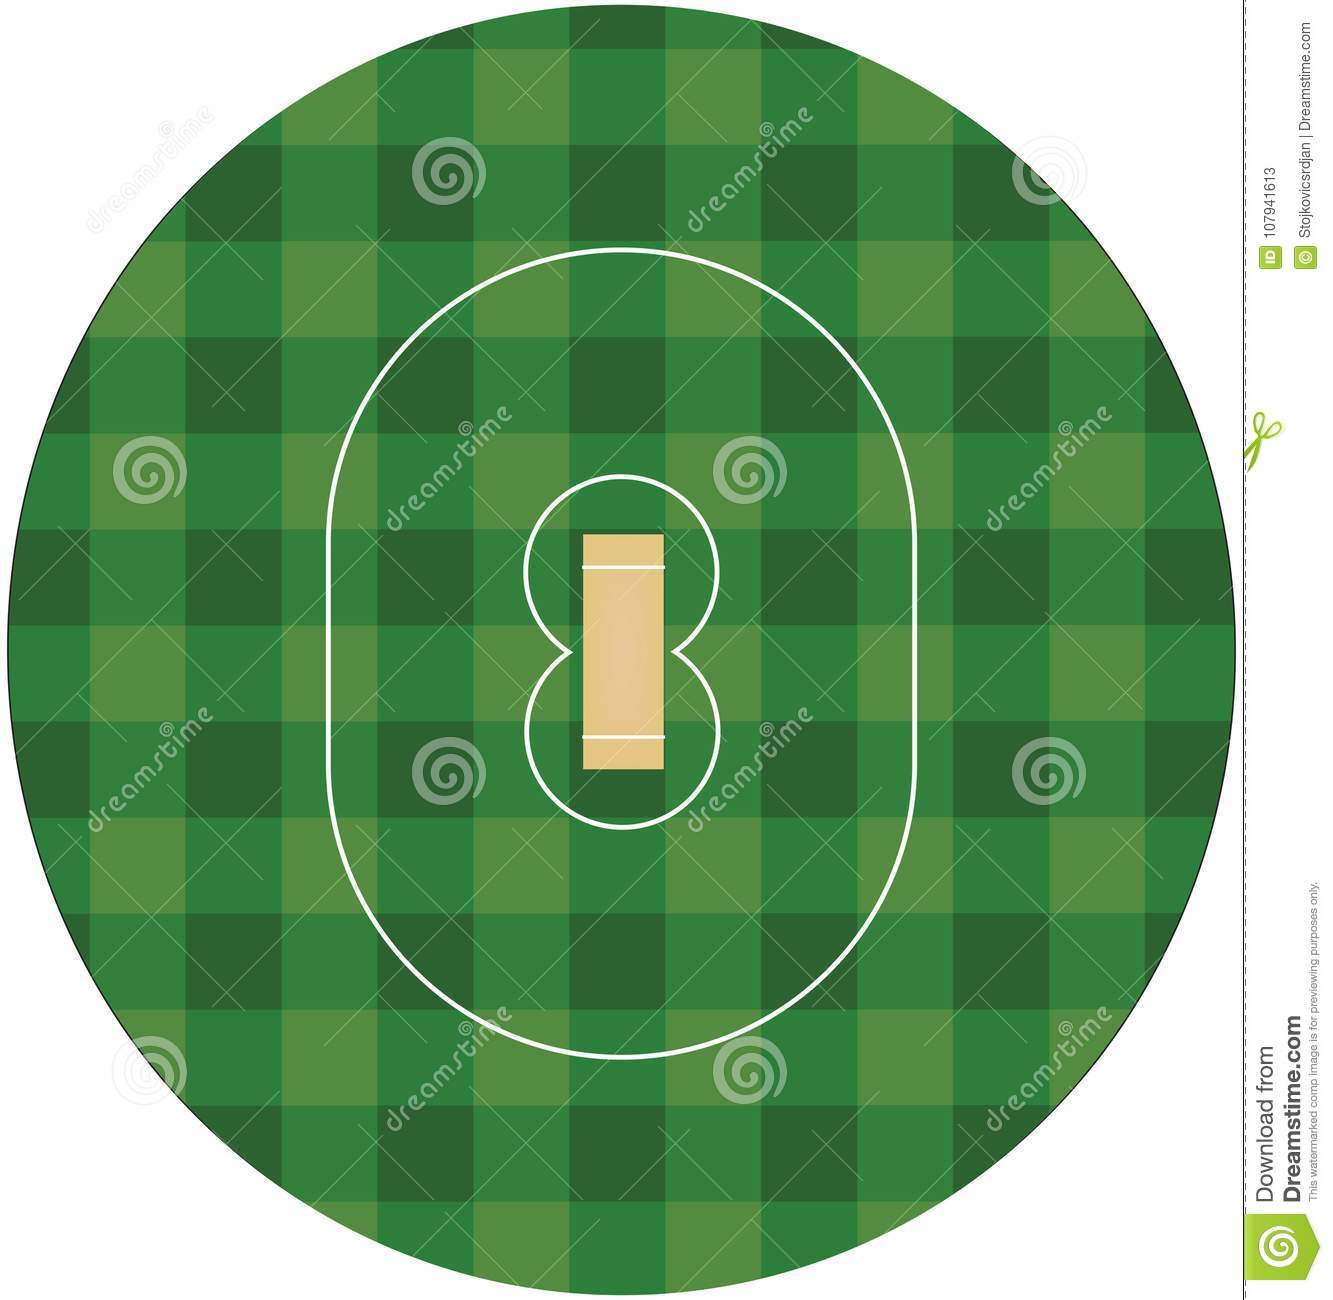 hight resolution of cricket field top view